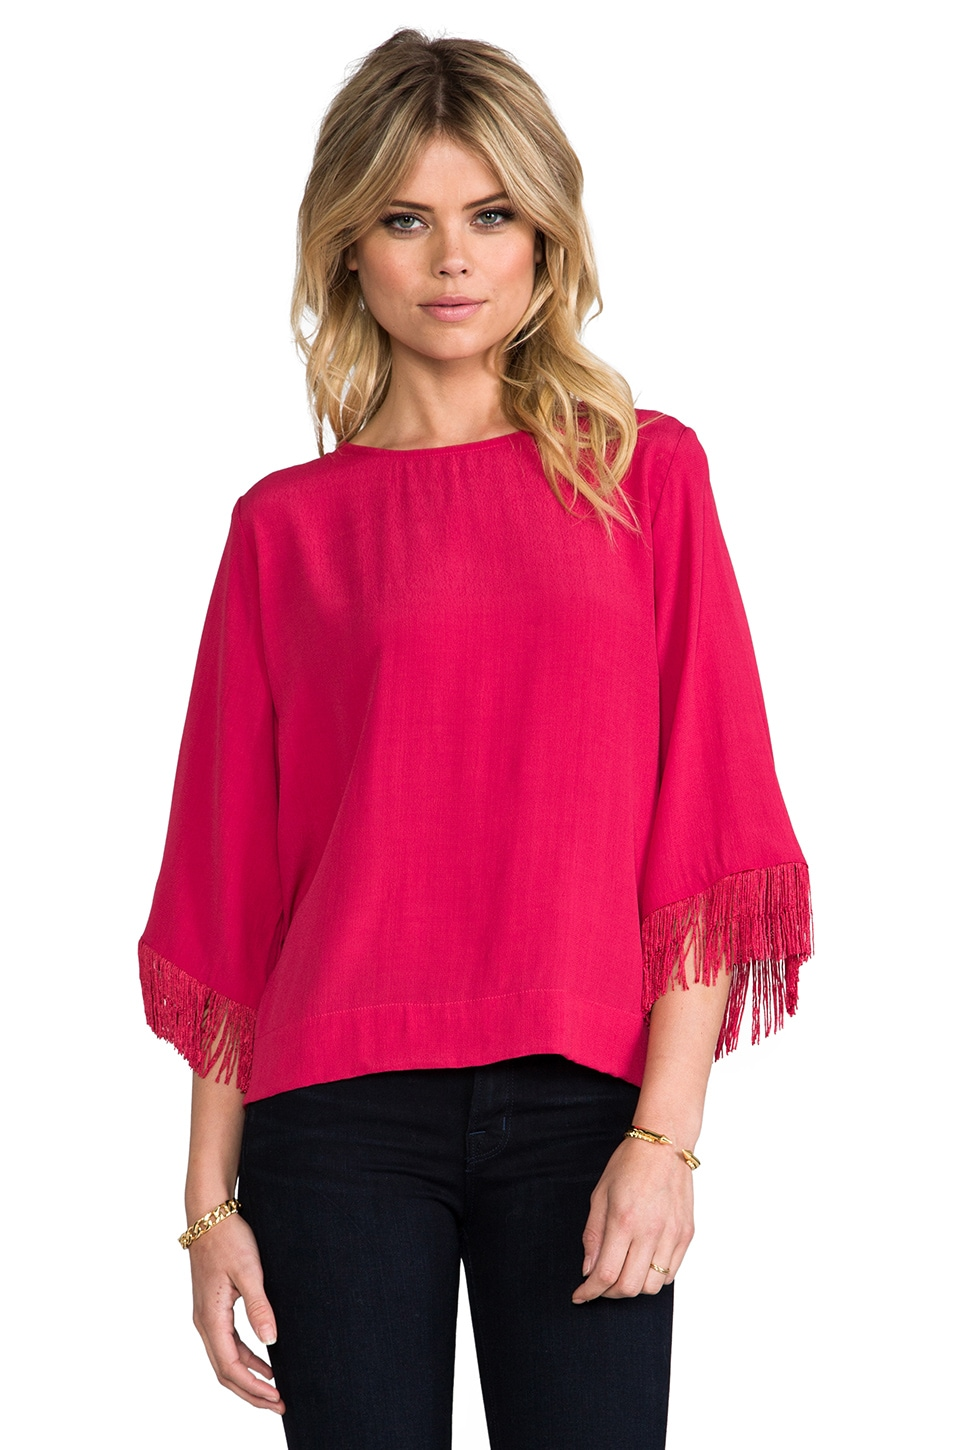 SAM&LAVI Noora Top in Cardinal Red